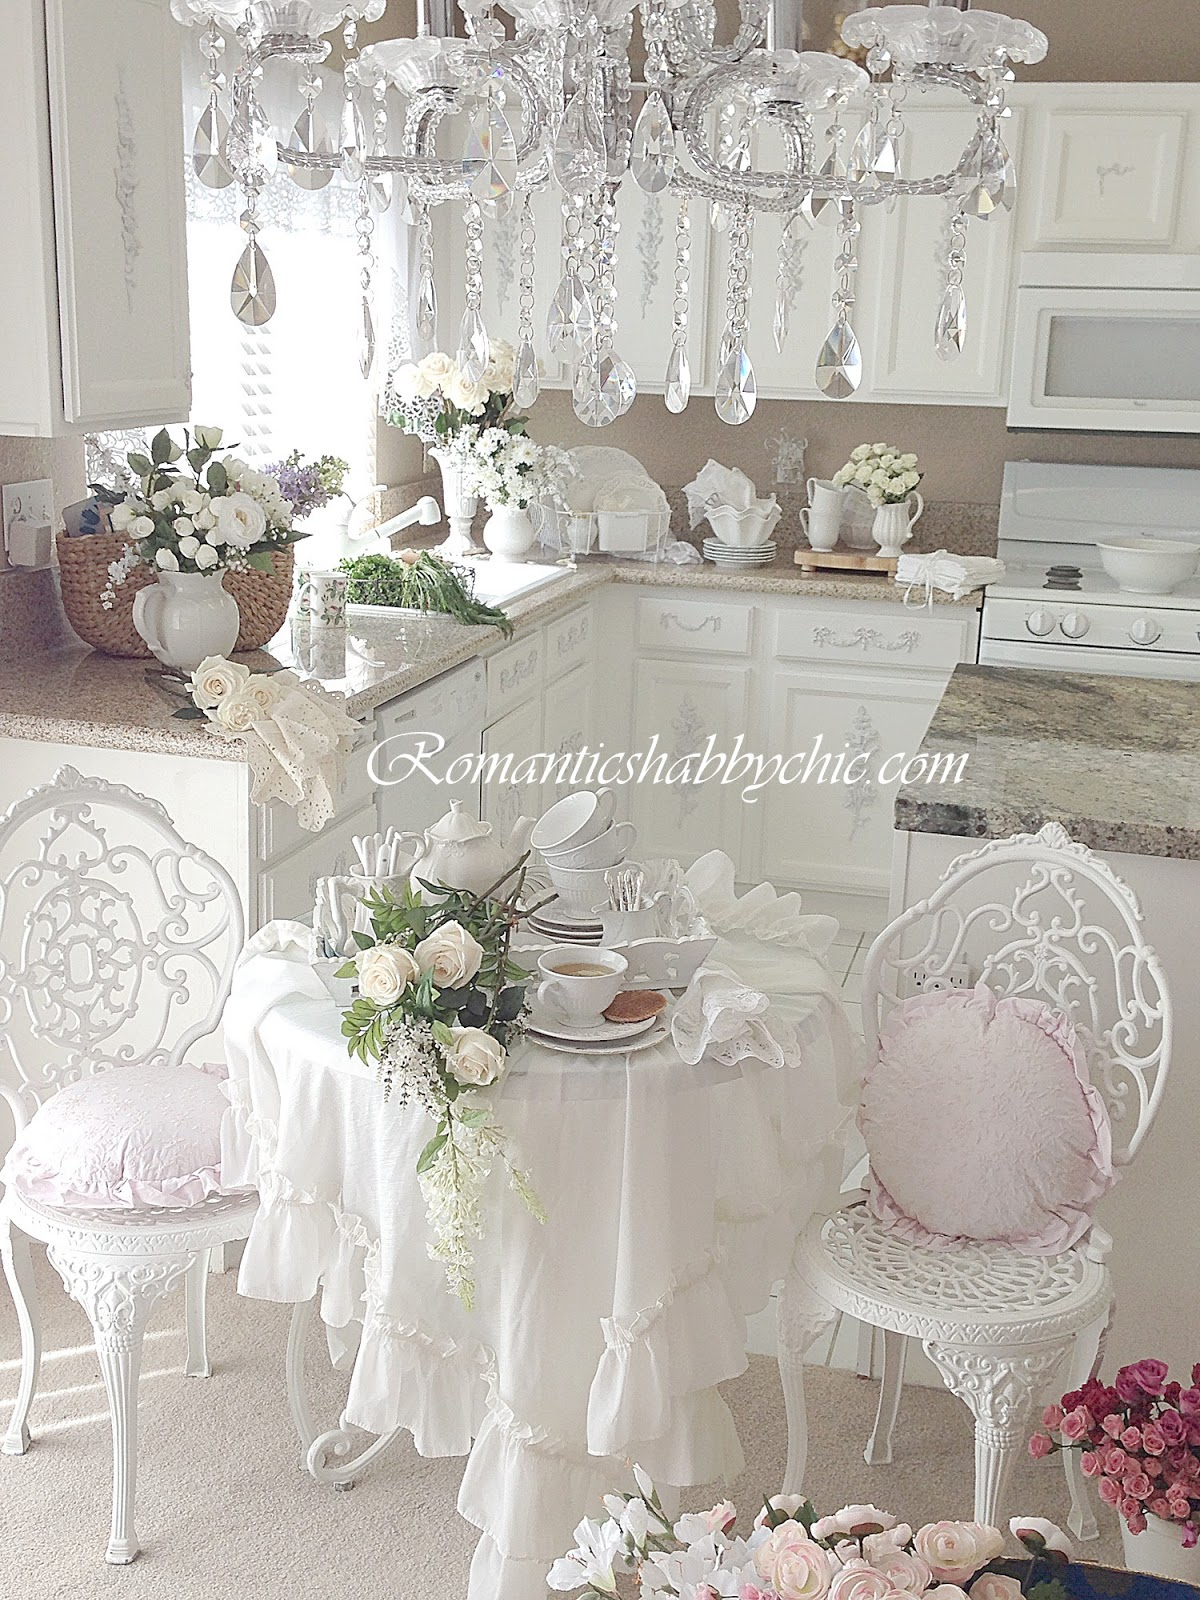 Shabby Chic Look My Shabby Chic Home Romantik Evim Romantik Ev My